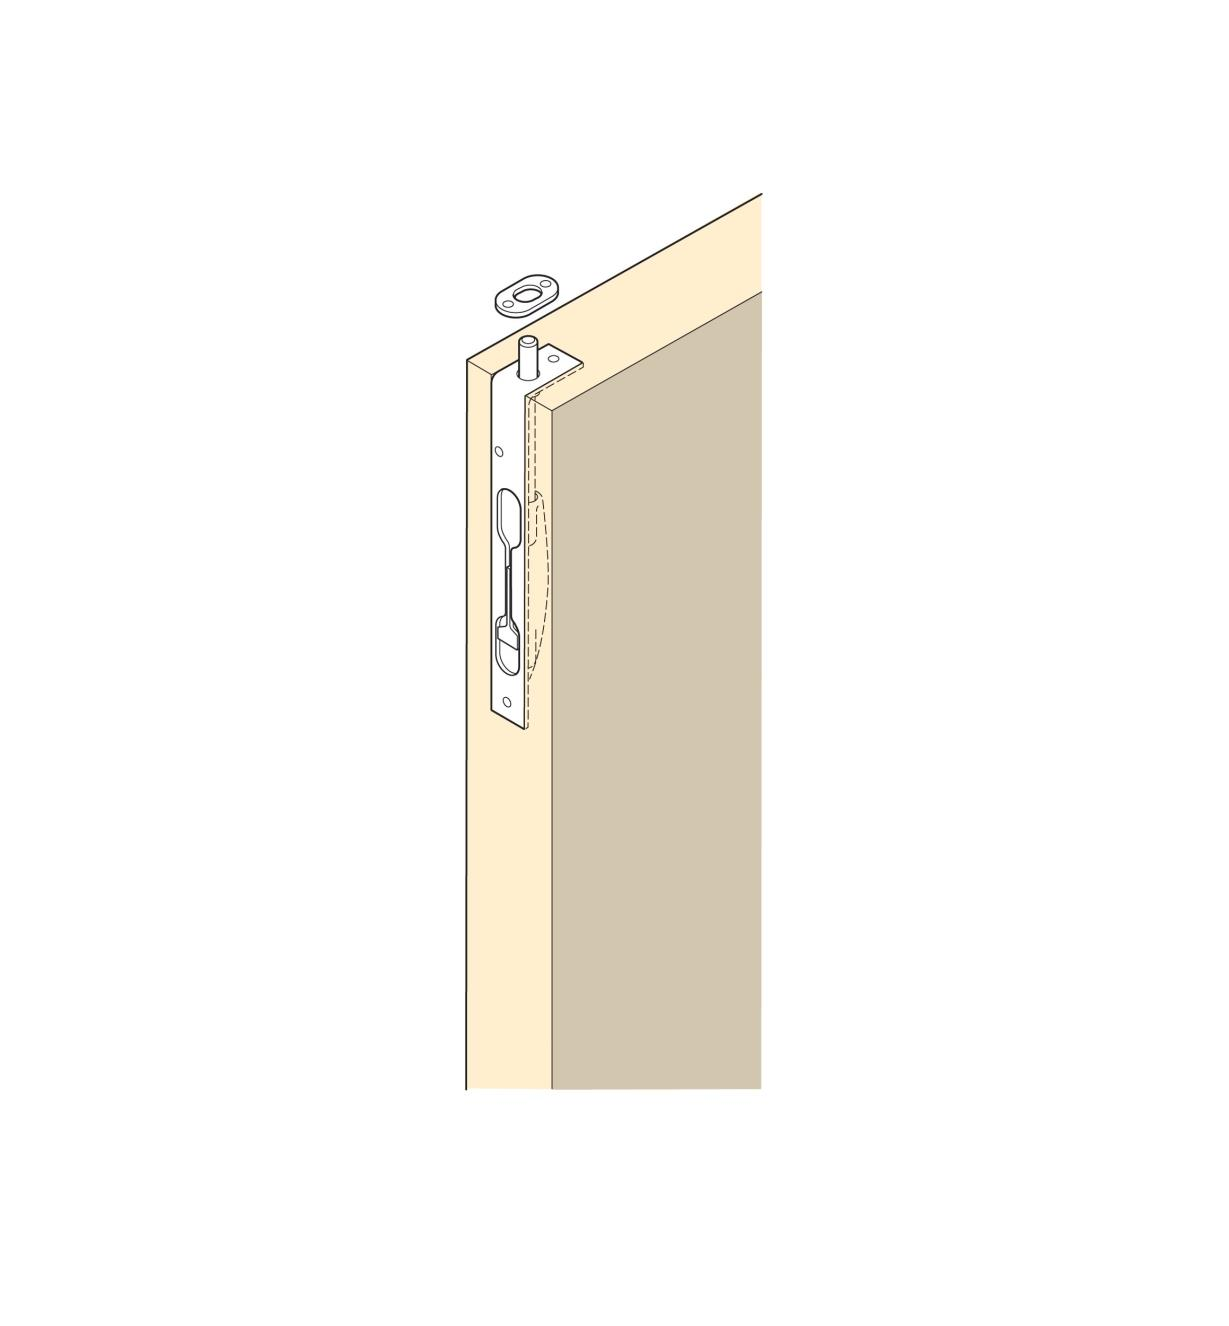 Illustration of installed Flush Bolt